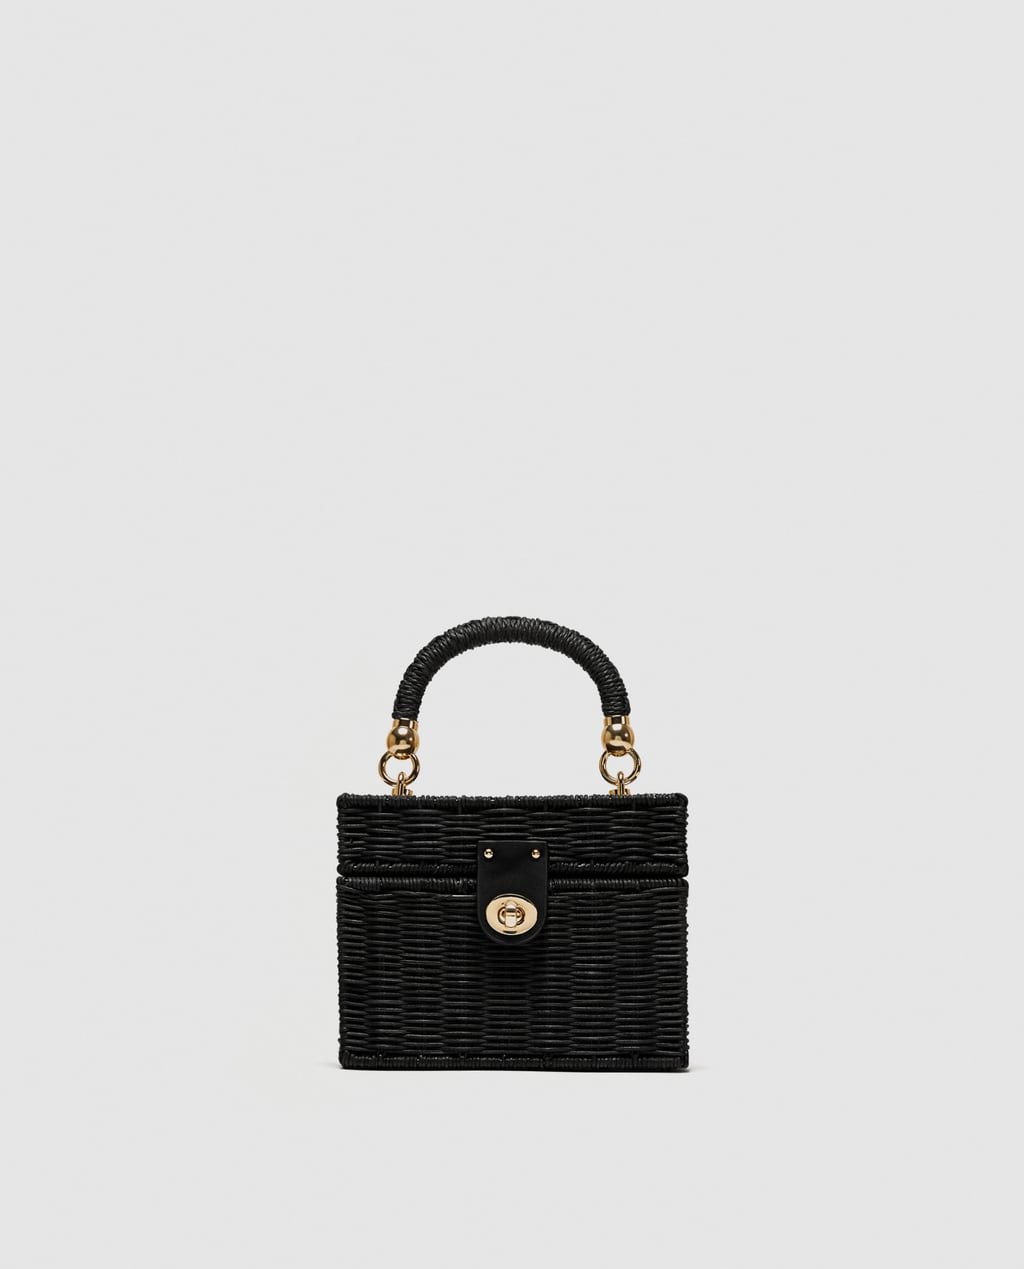 Zara Straw Mini Bag.jpg